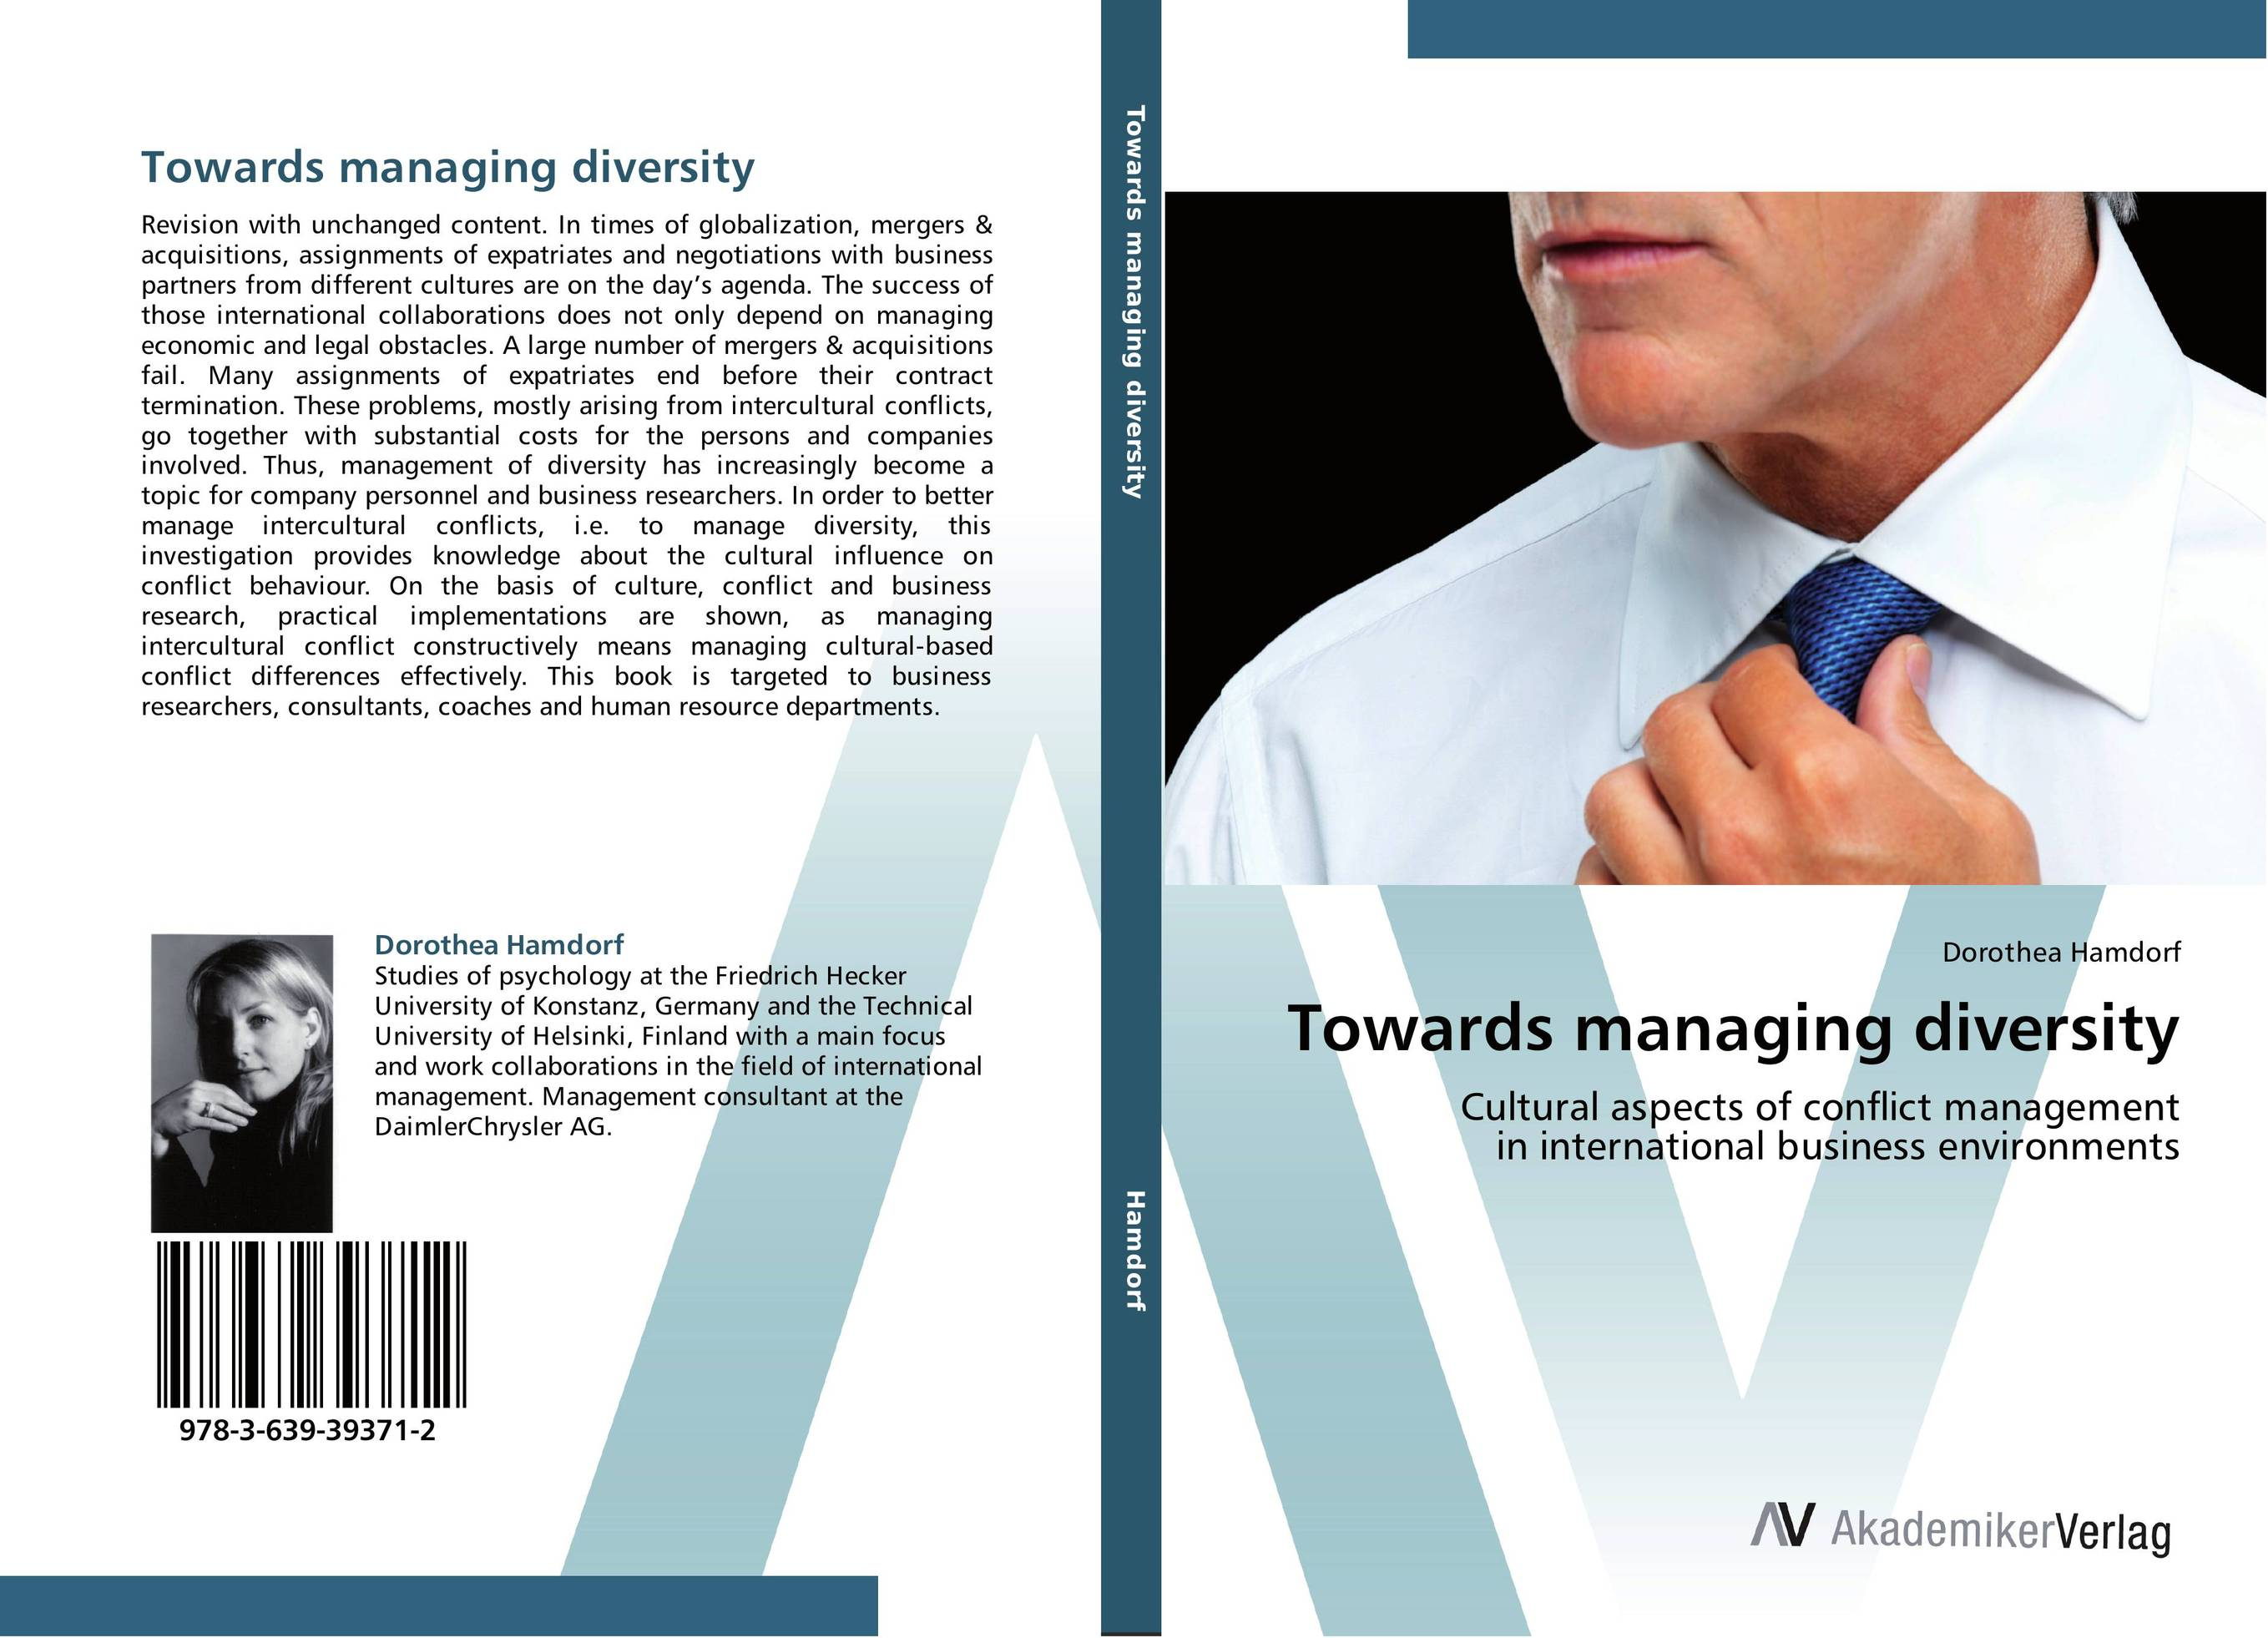 Towards managing diversity bill snow mergers and acquisitions for dummies